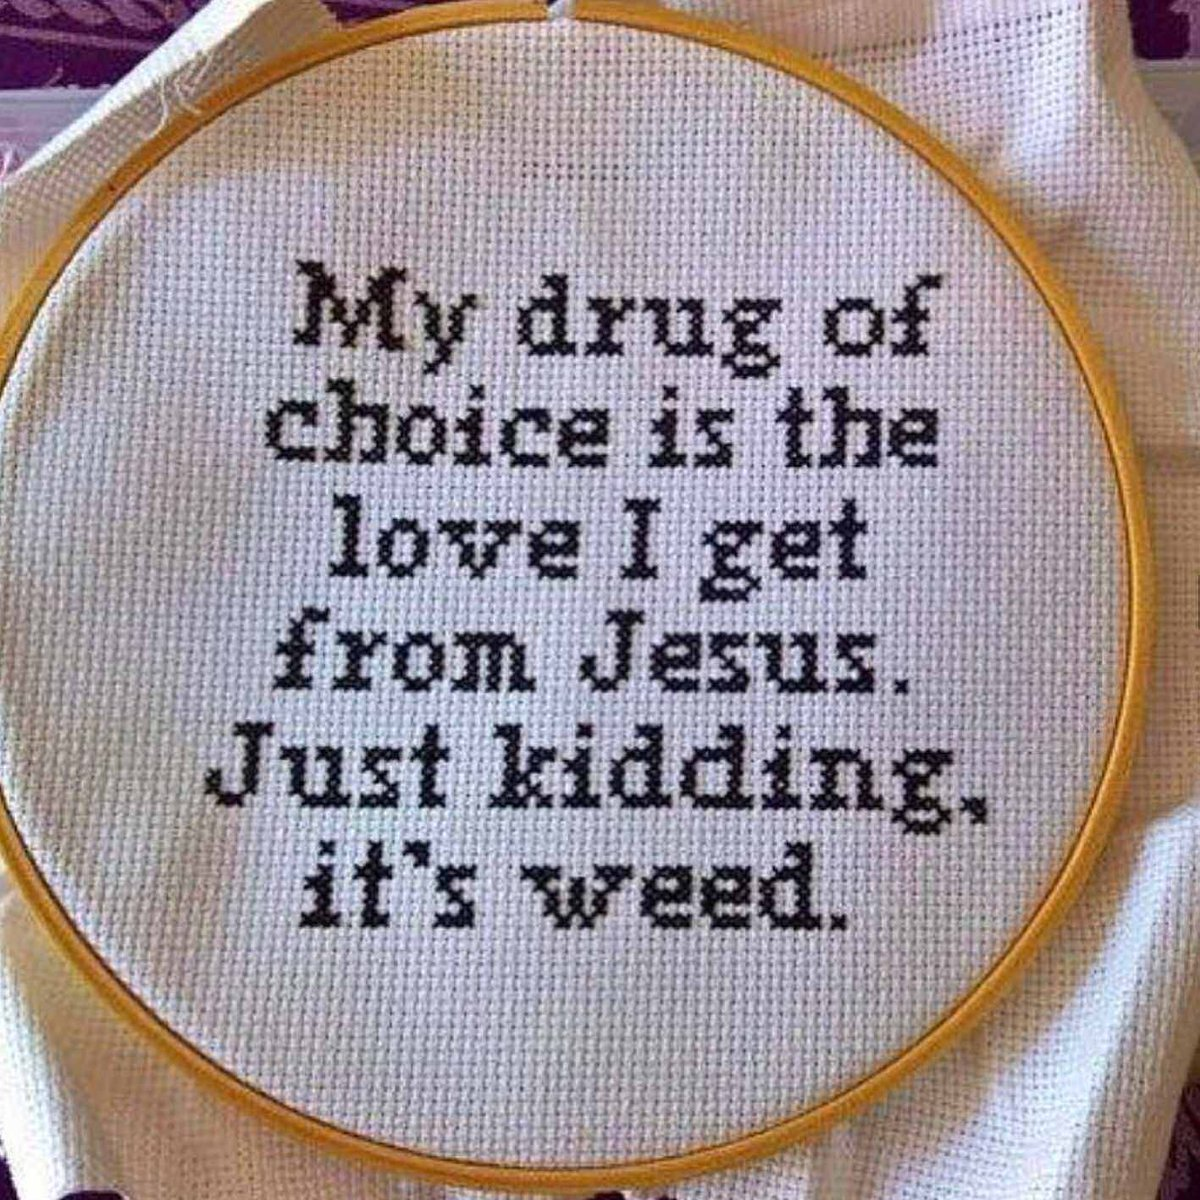 My drug of choice is... https://t.co/YqKjDLv80o